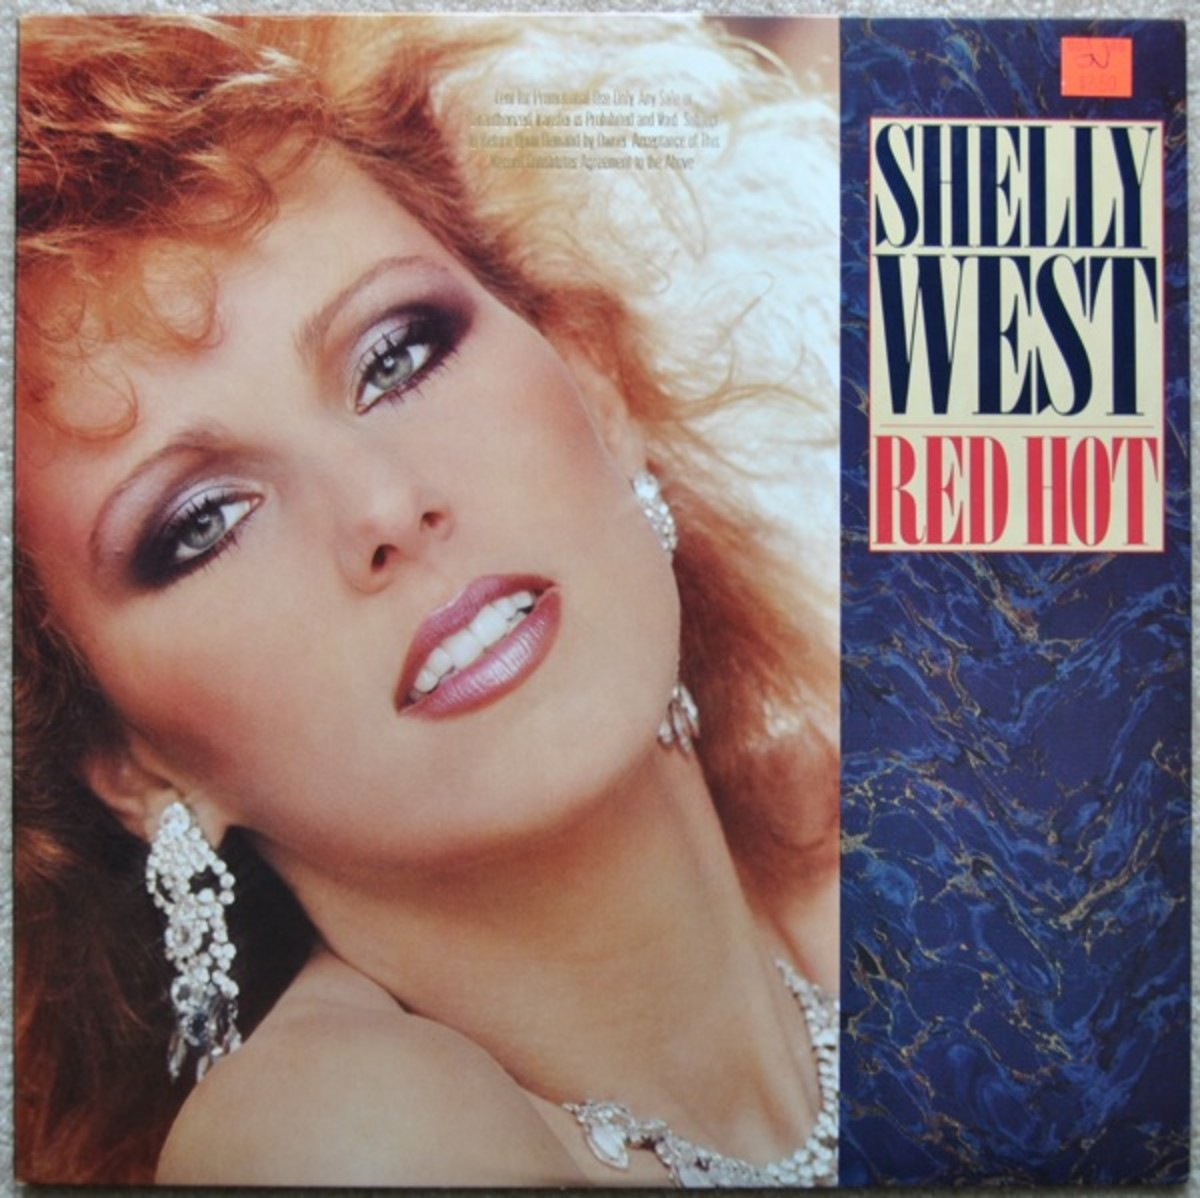 Cover of Shelly West's Red Hot Album